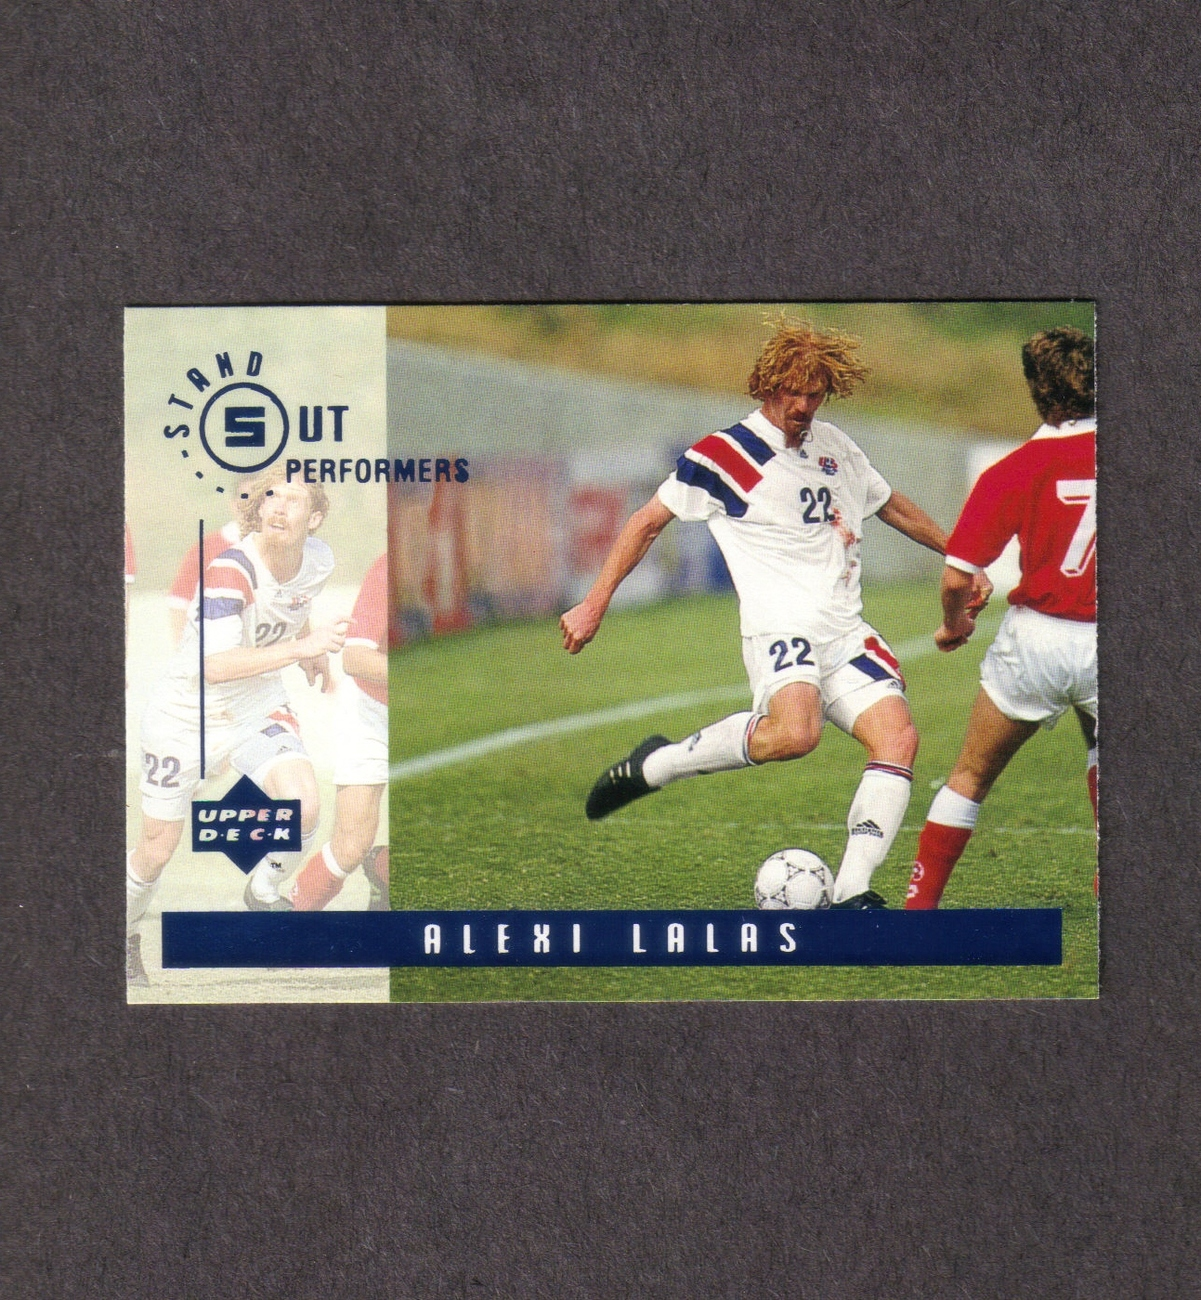 1994 Upper Deck Alexi Lalas Stand Out Performers Bonanza